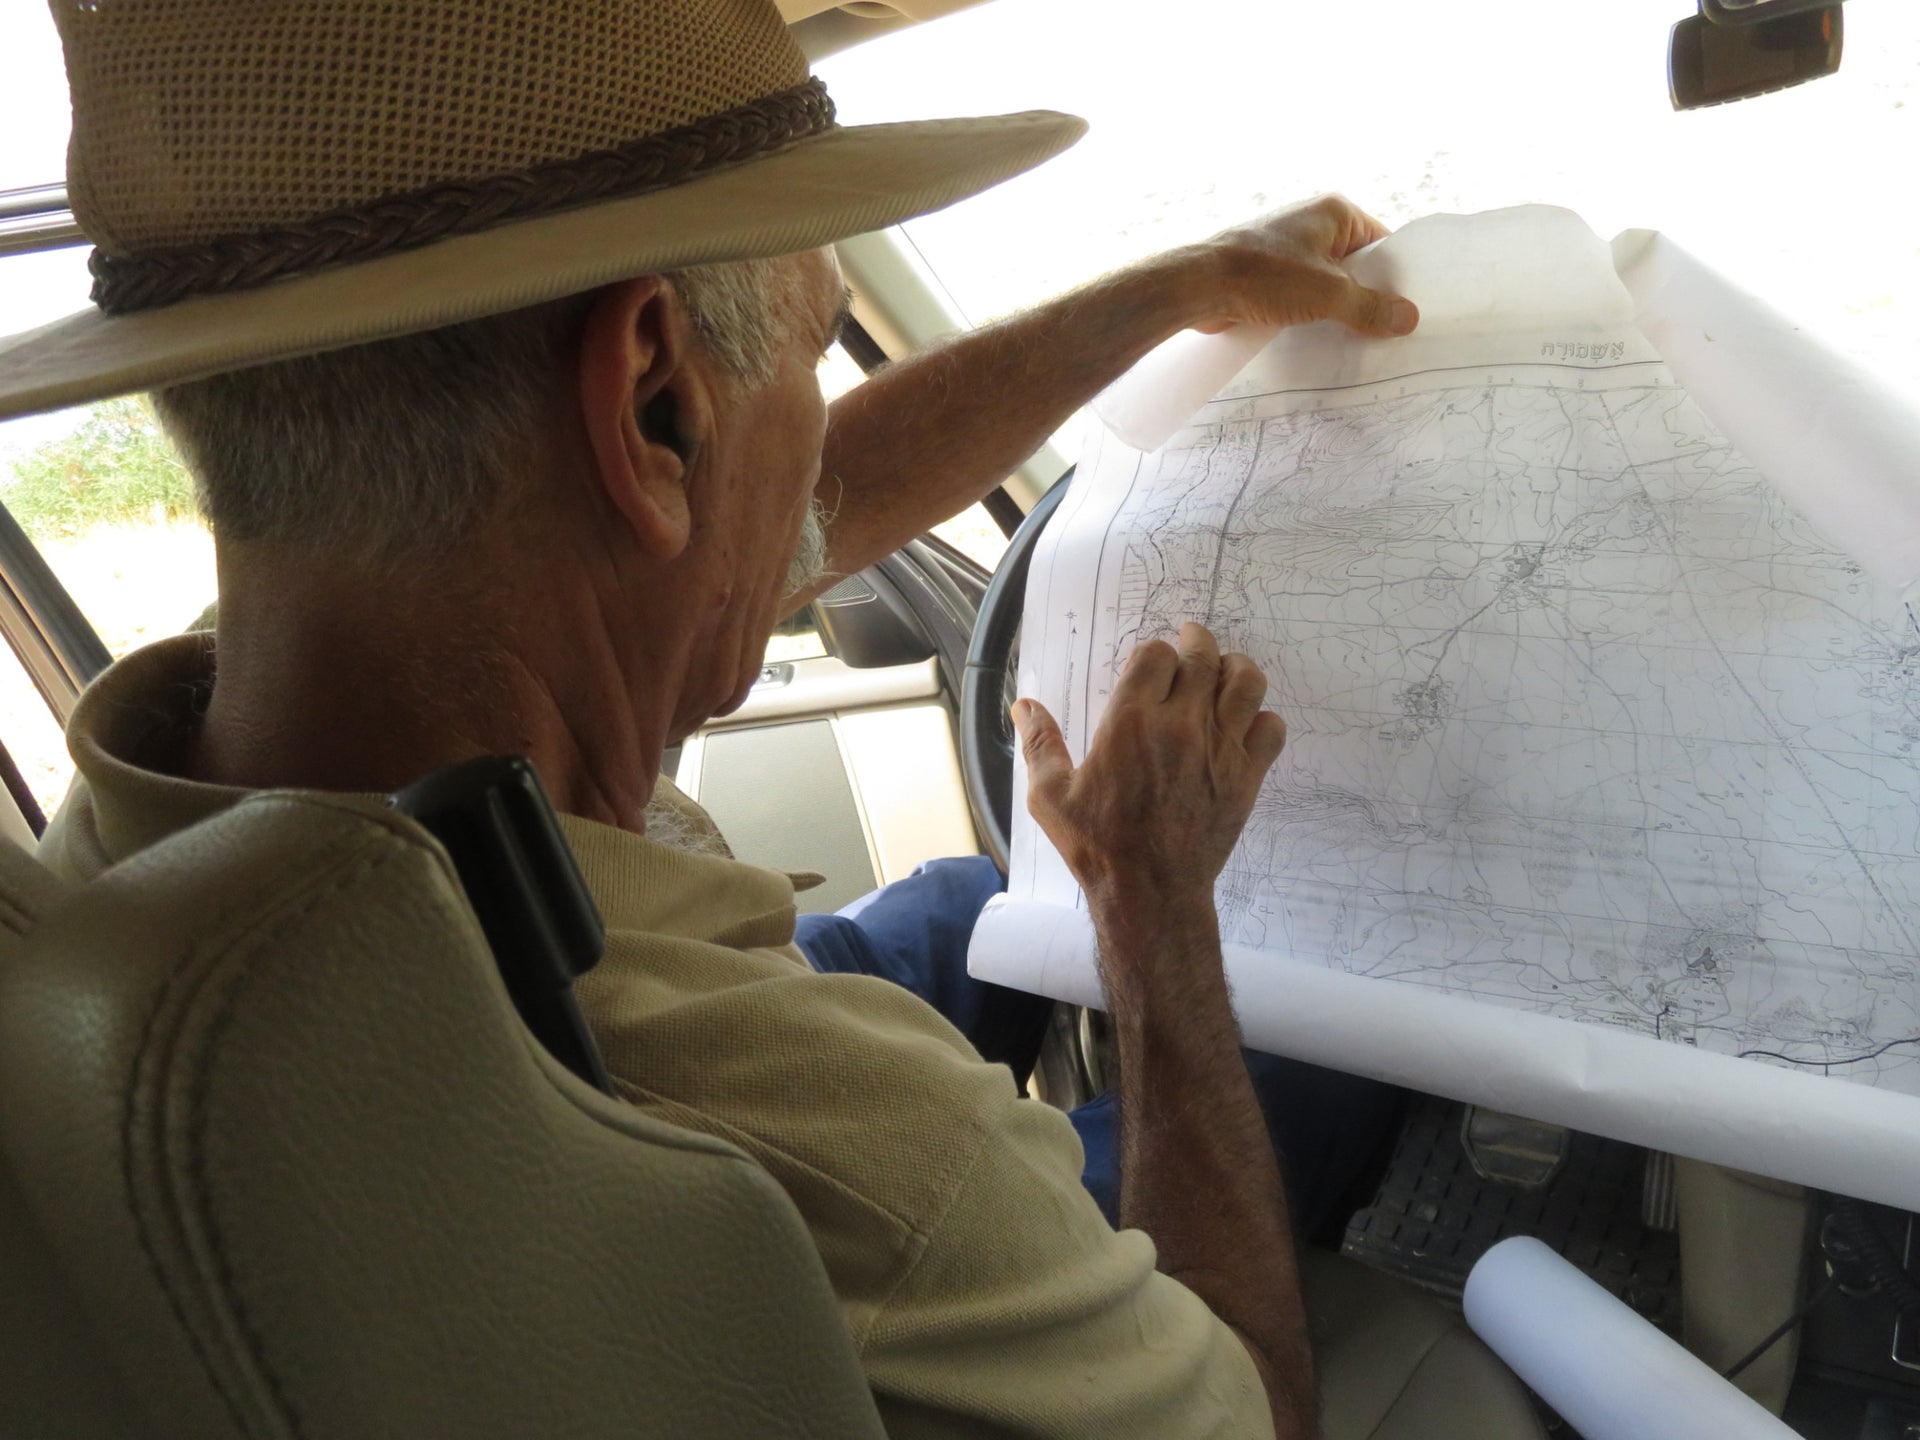 Morris Tzemach looking at a historic map of the area.